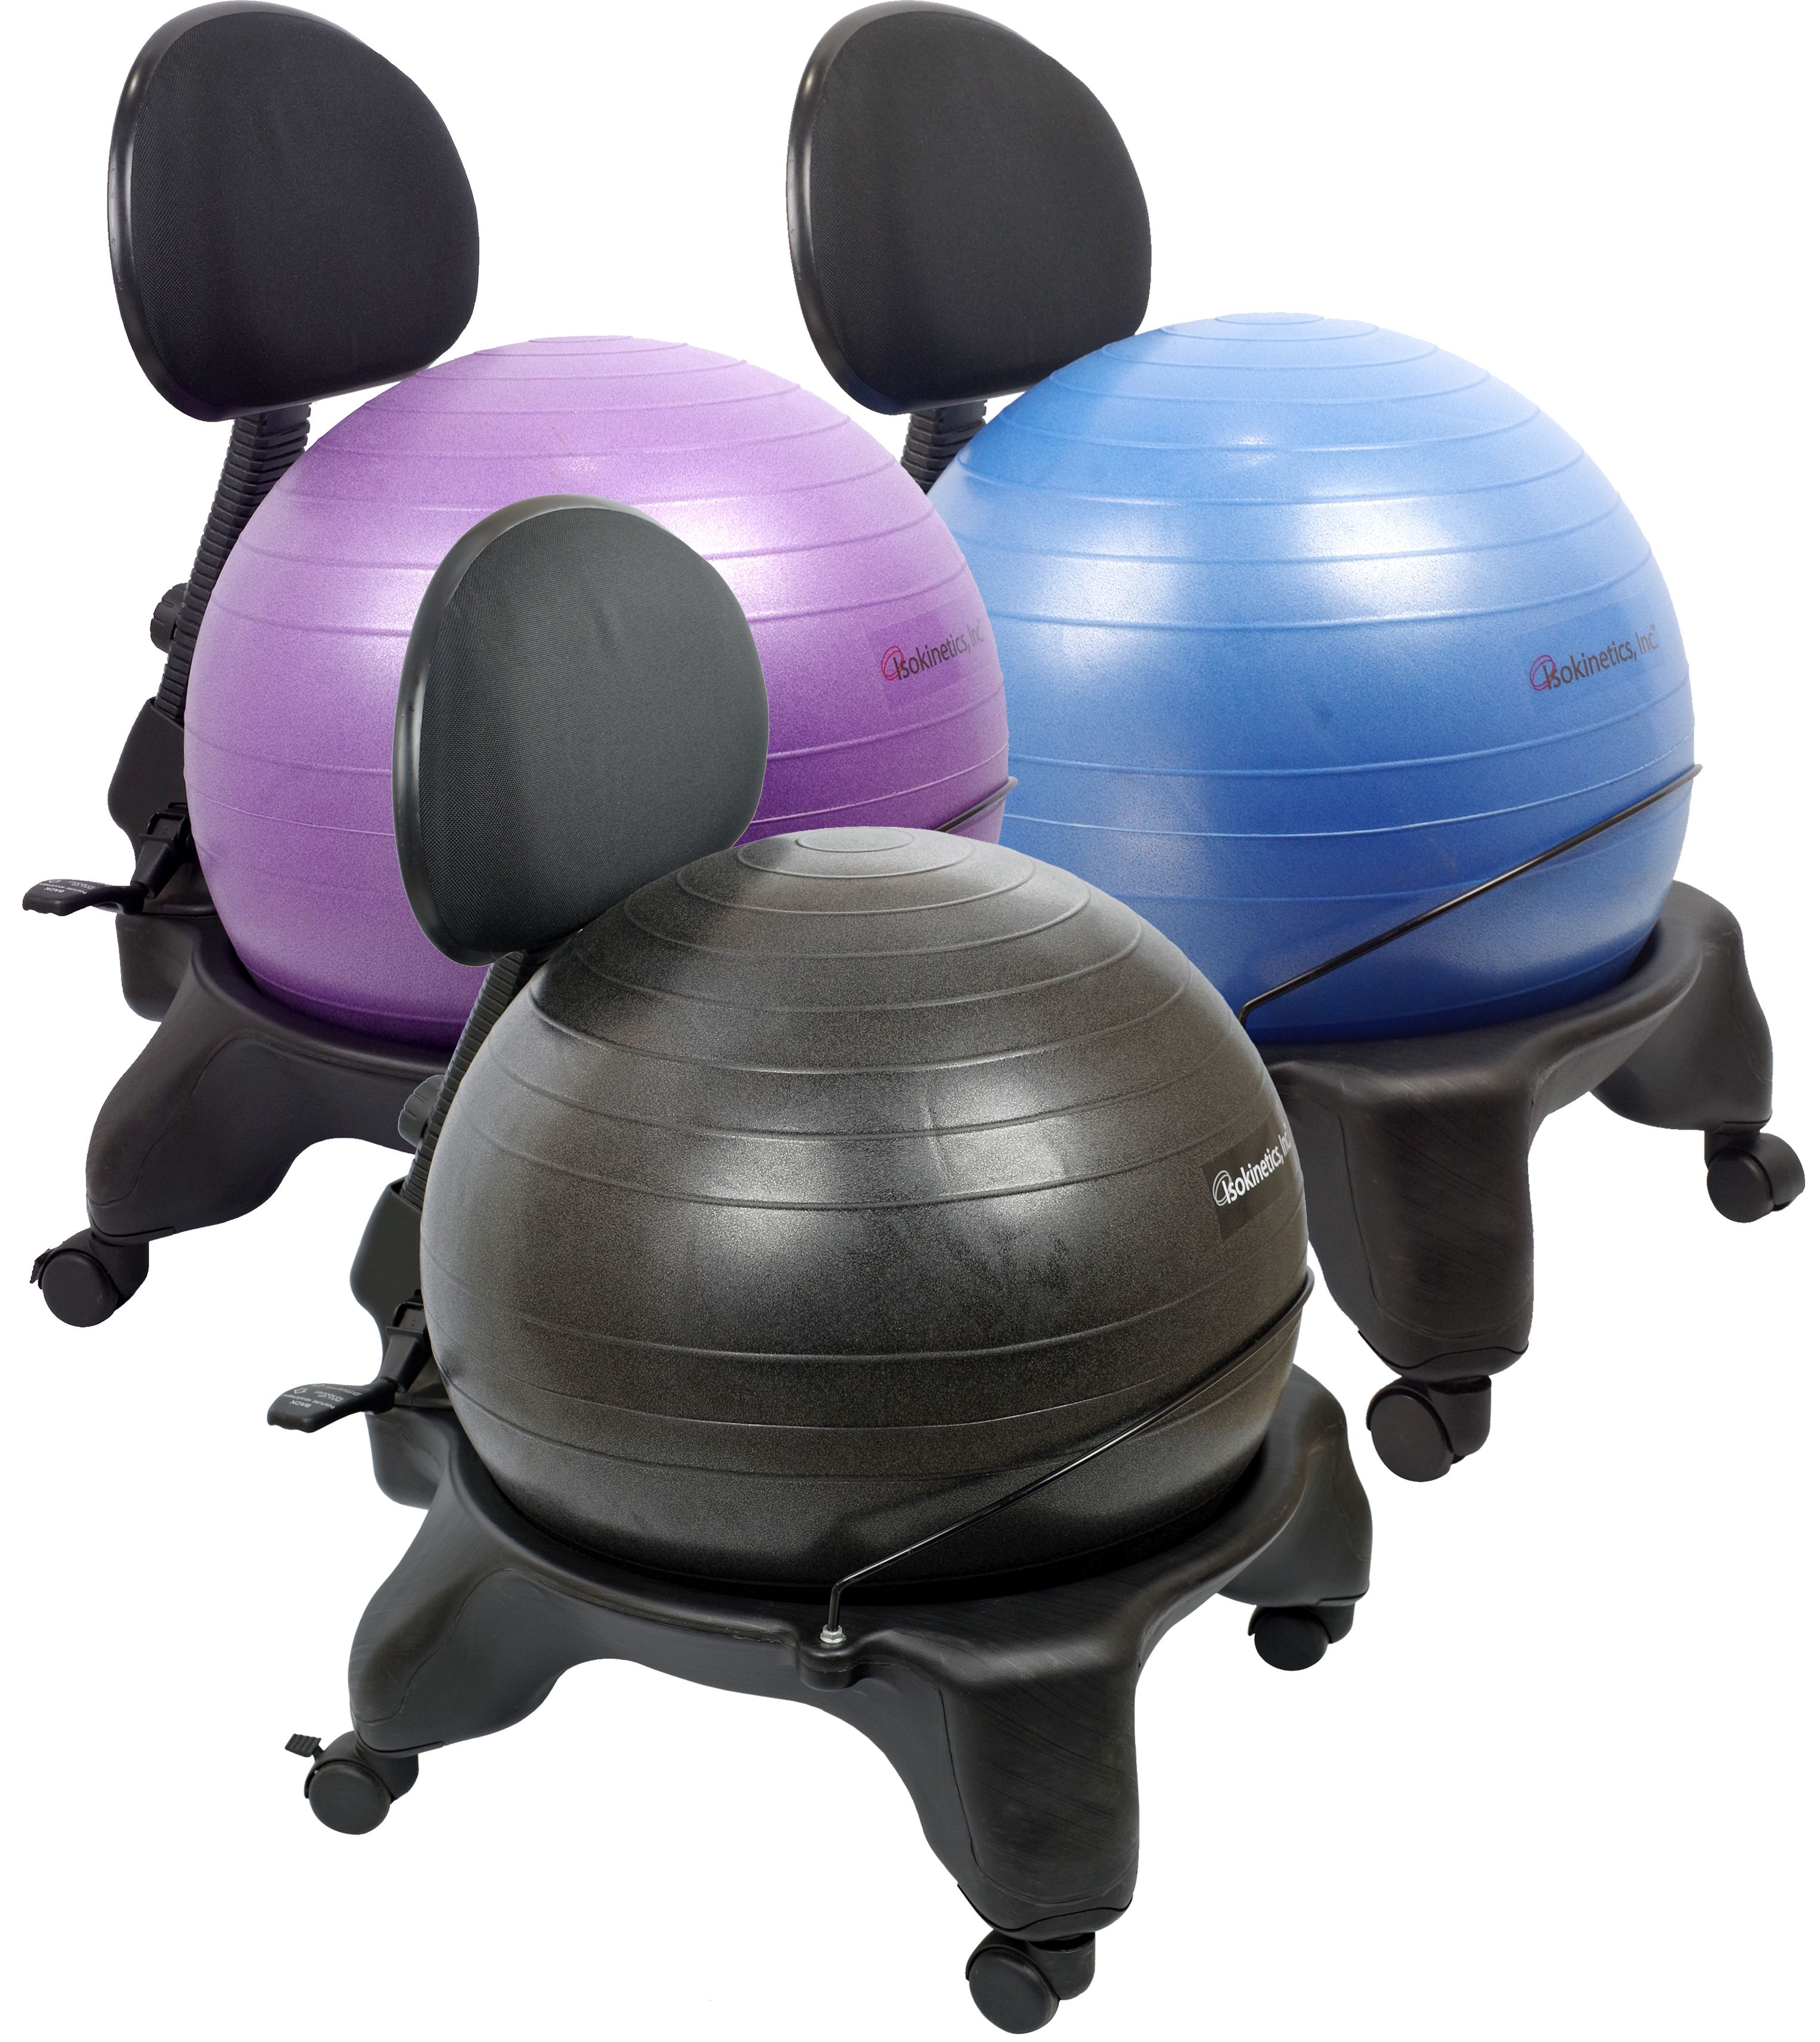 Isokinetics Inc Adjule Back Exercise Ball Office Chair With Size 60mm 2 5 Wheels